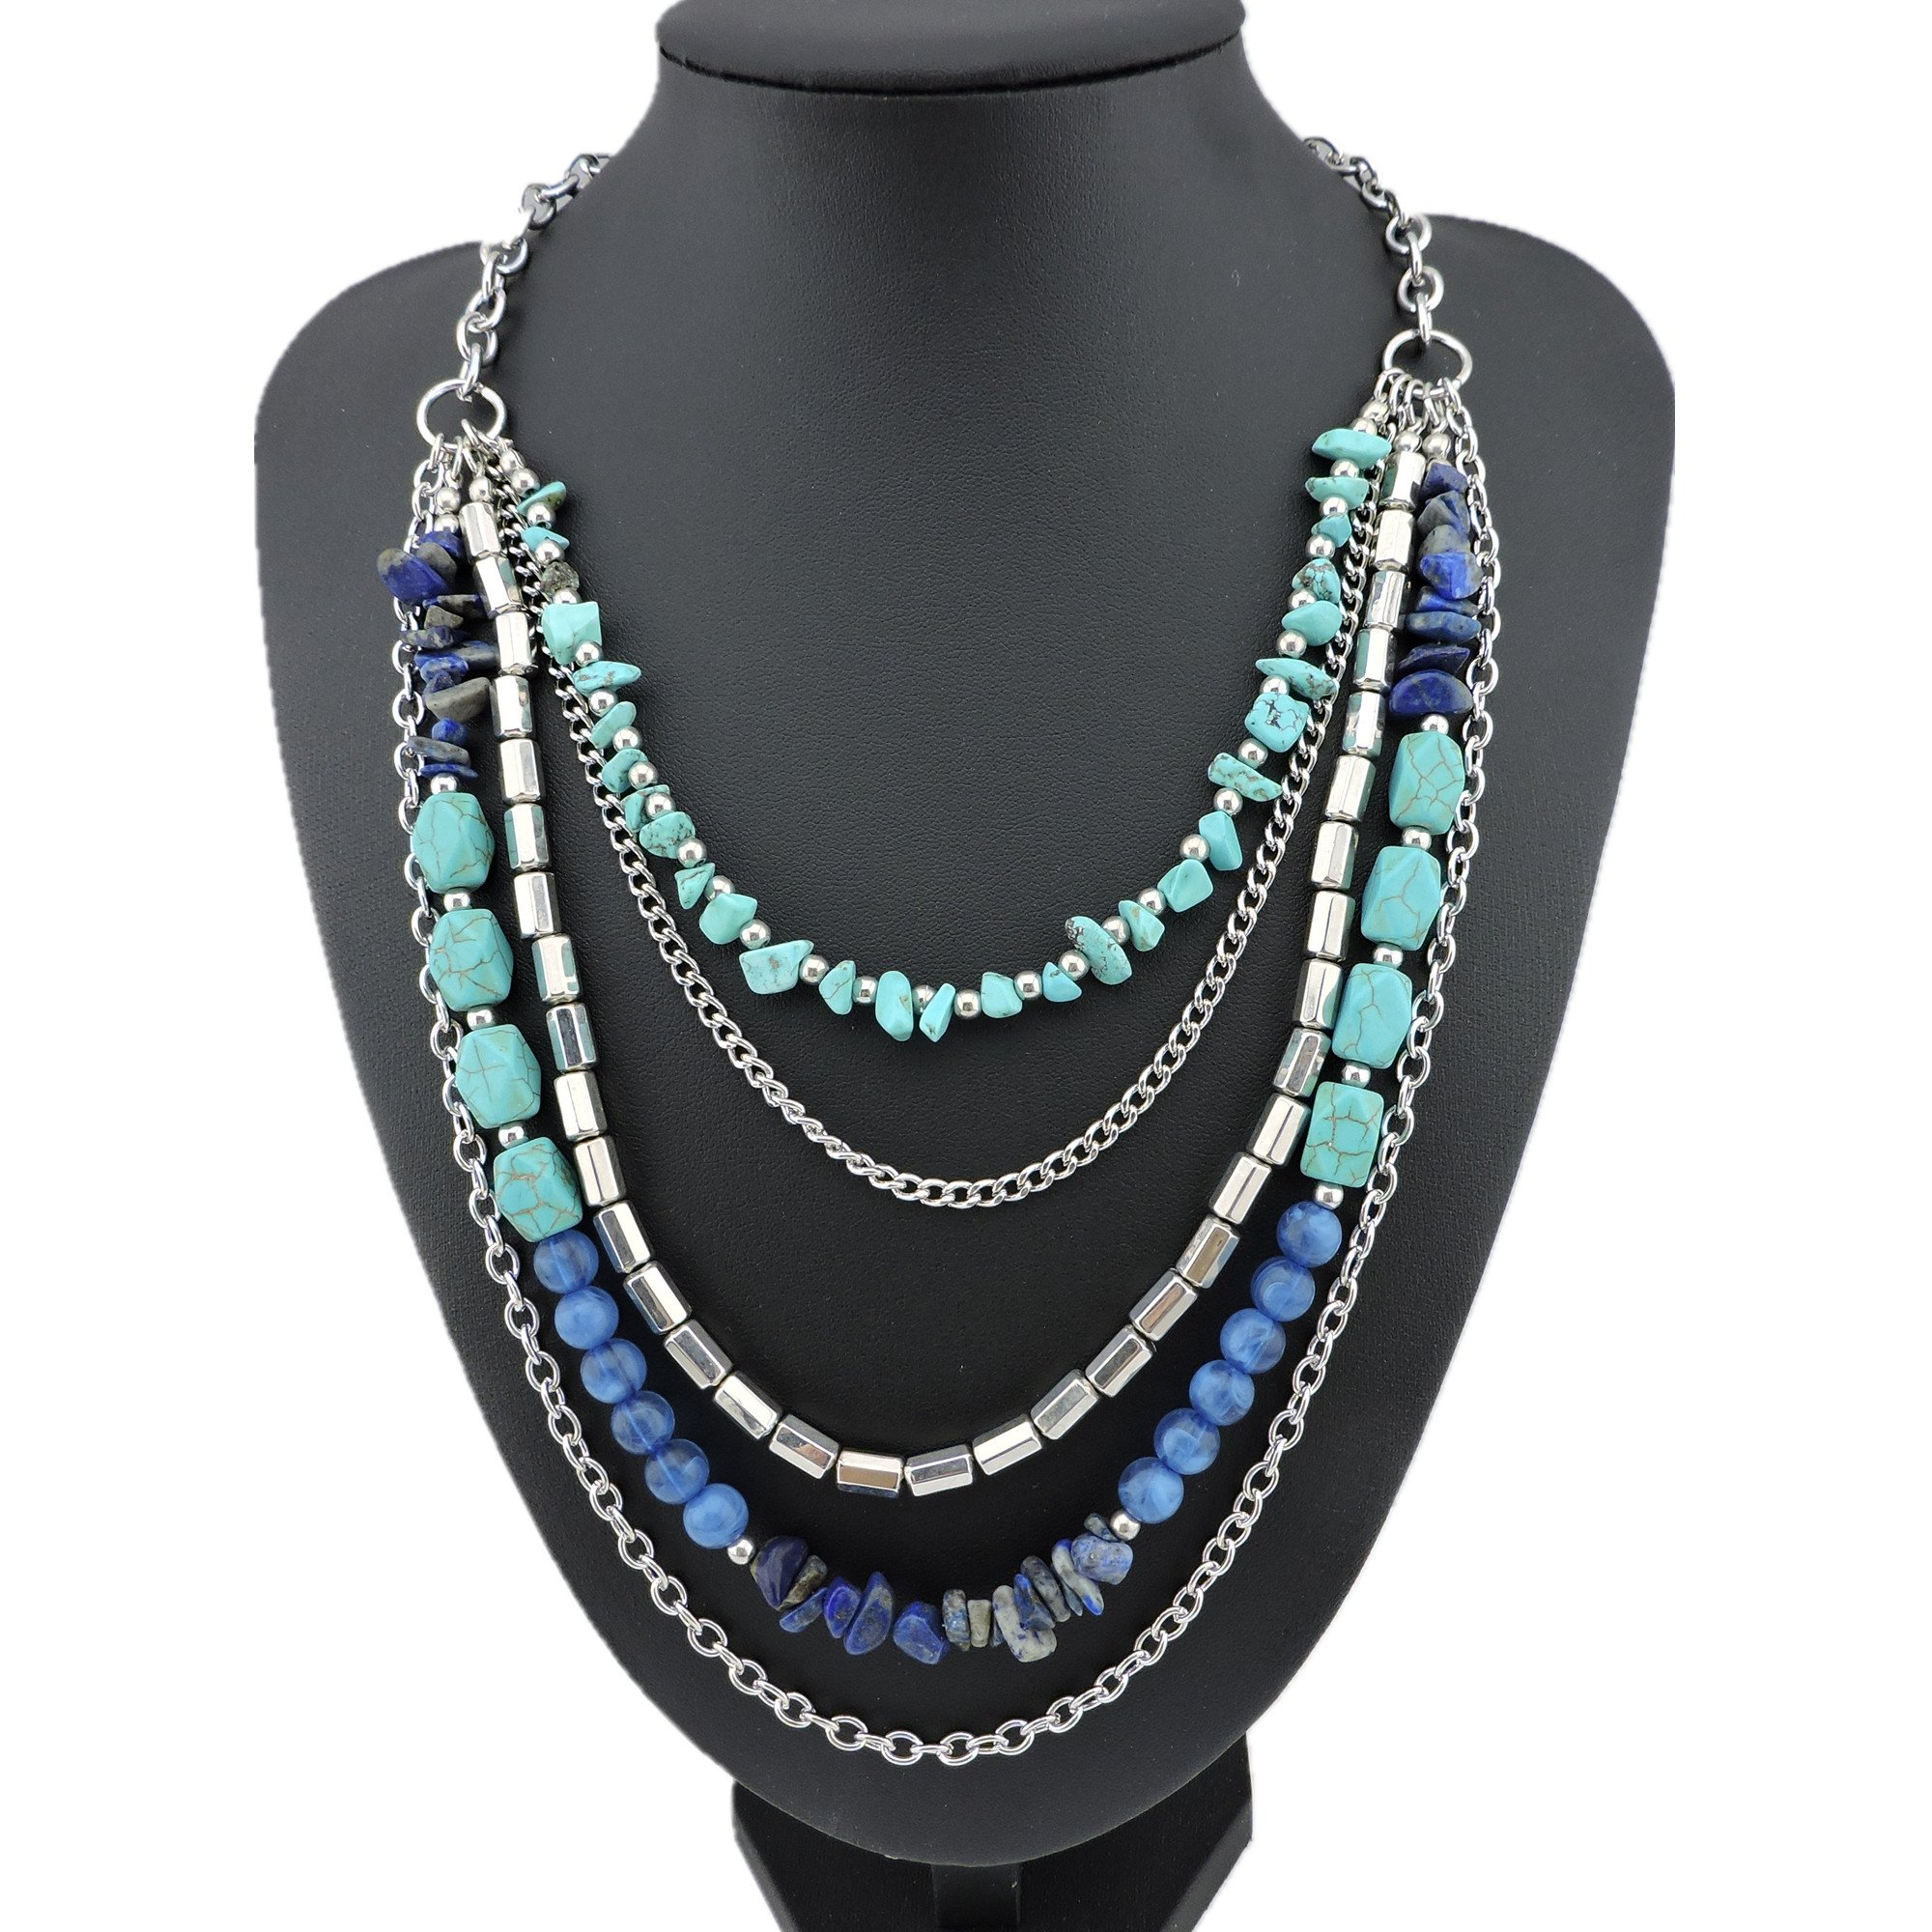 BOCAR Personalized Layered Strands Natural Turquoise Statement Chunky Necklace for Women Gifts (113)